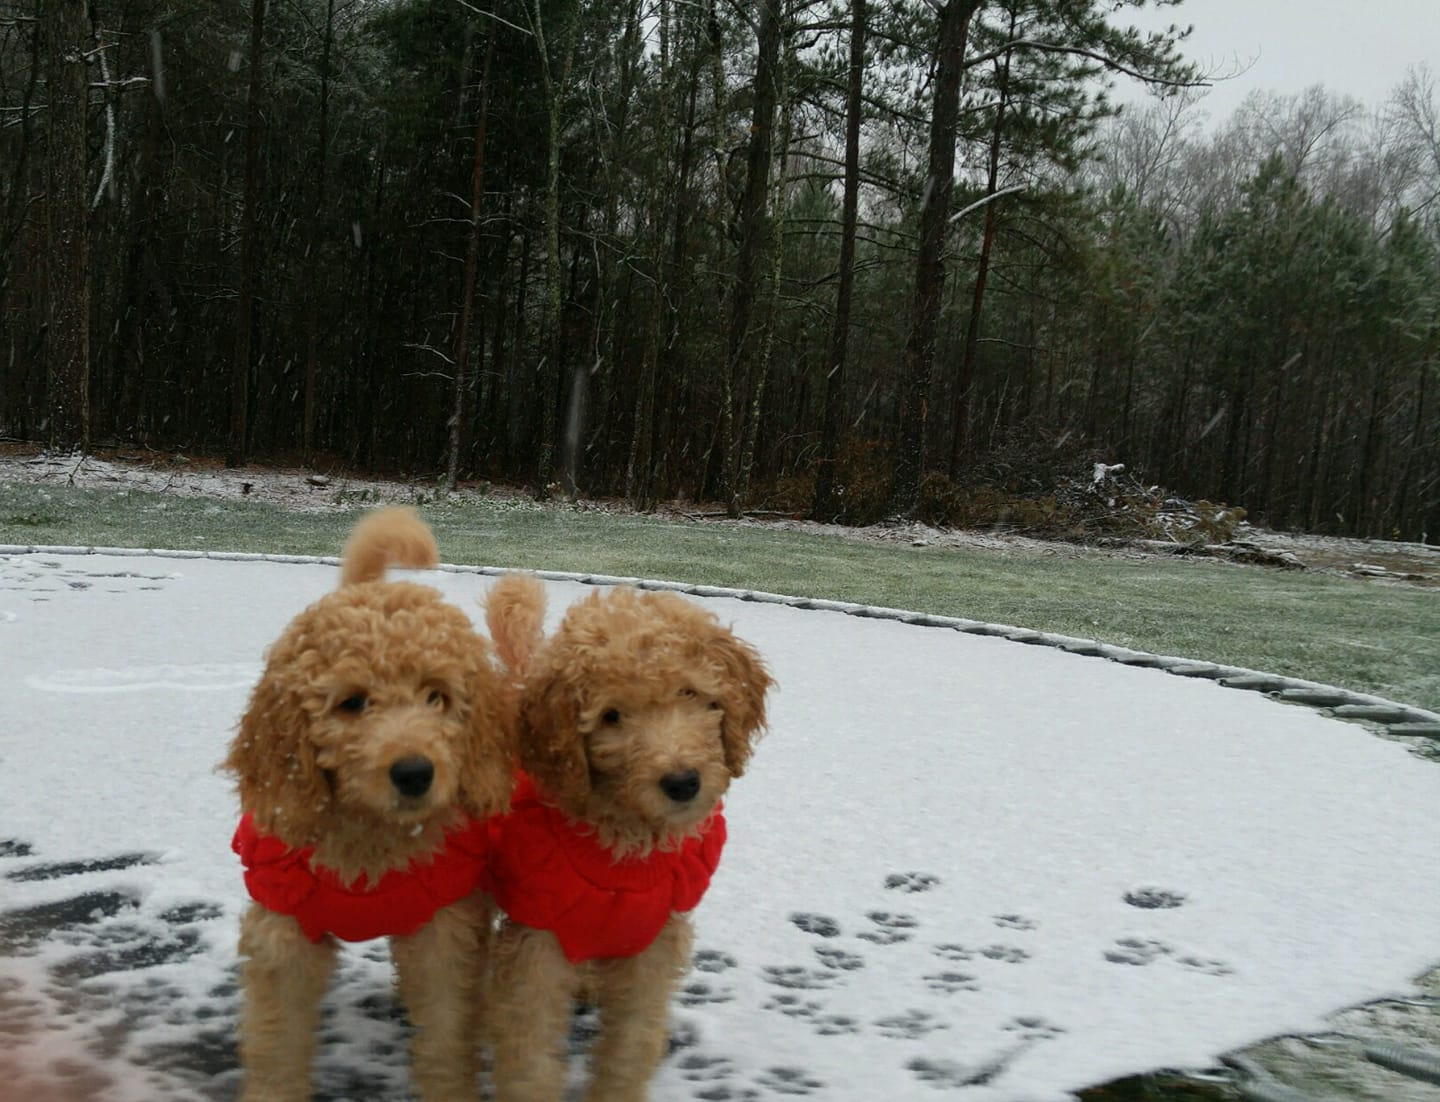 "<div class=""meta image-caption""><div class=""origin-logo origin-image none""><span>none</span></div><span class=""caption-text"">These pups are ready for the snow (Credit: Sharee Avila)</span></div>"